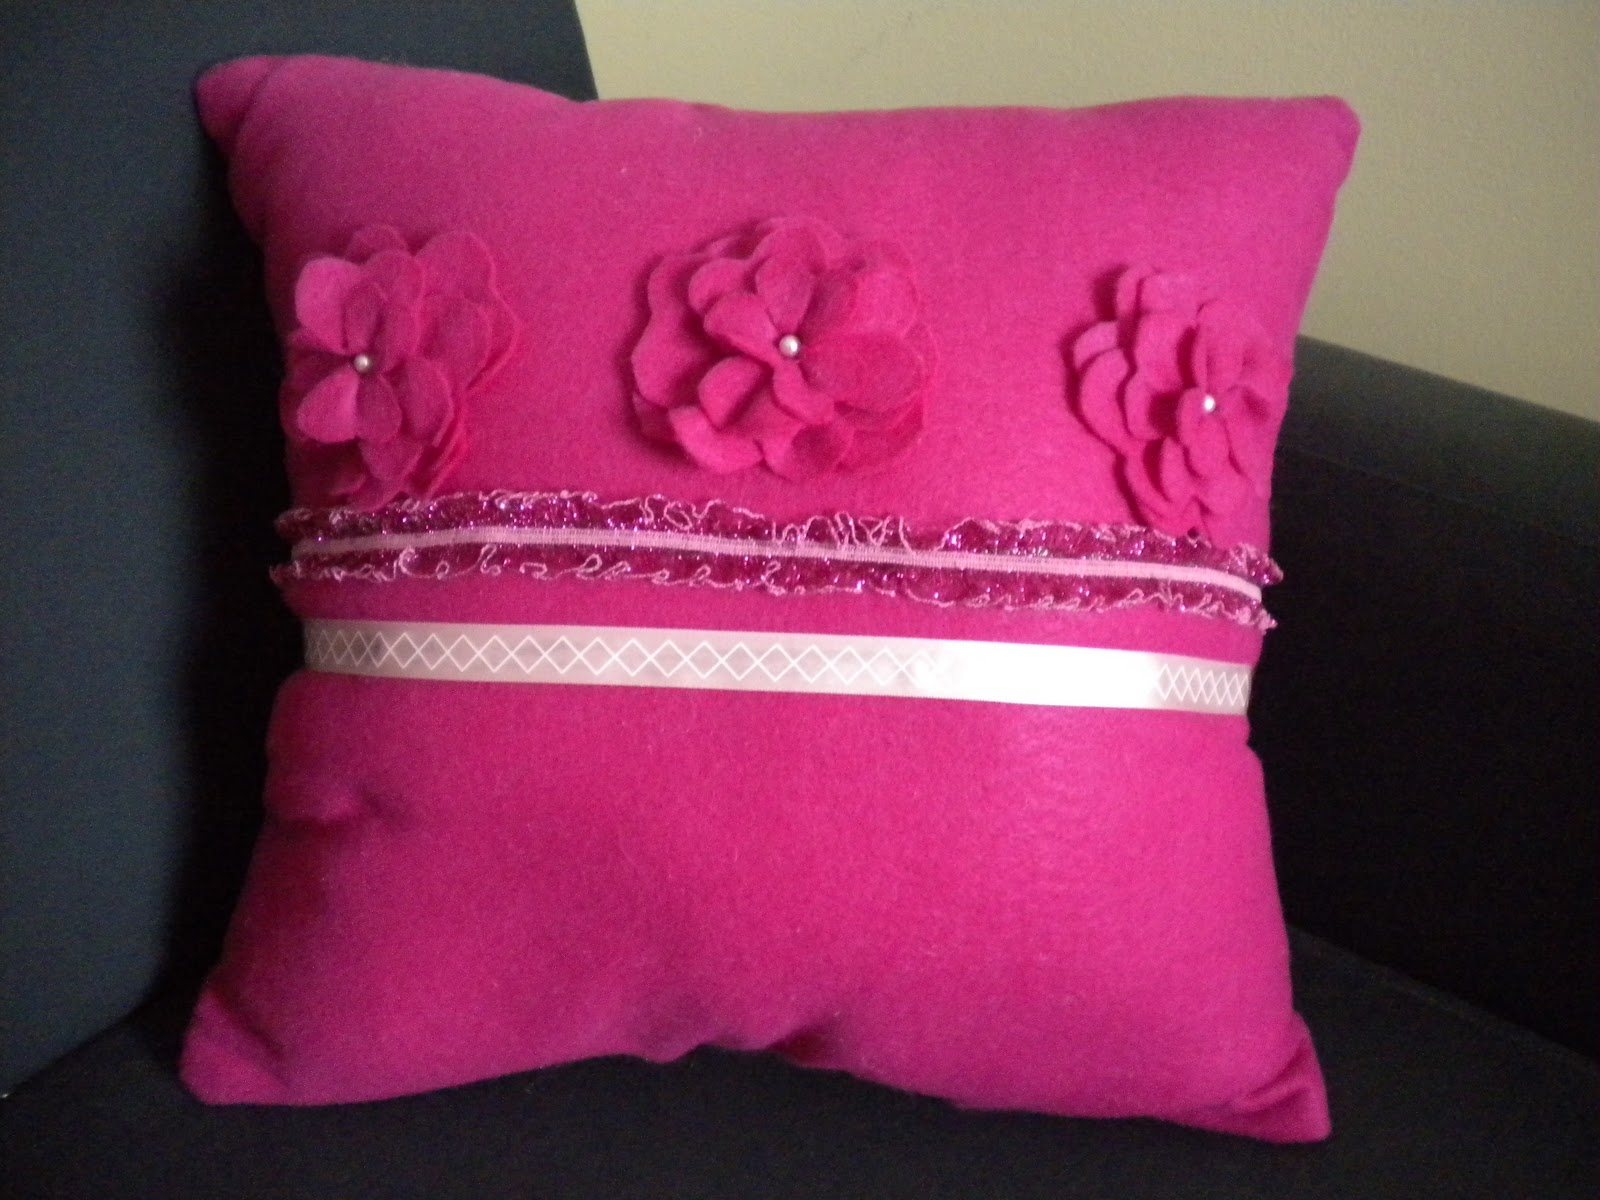 Felt Flower Pillow Tutorial My Girlish Whims